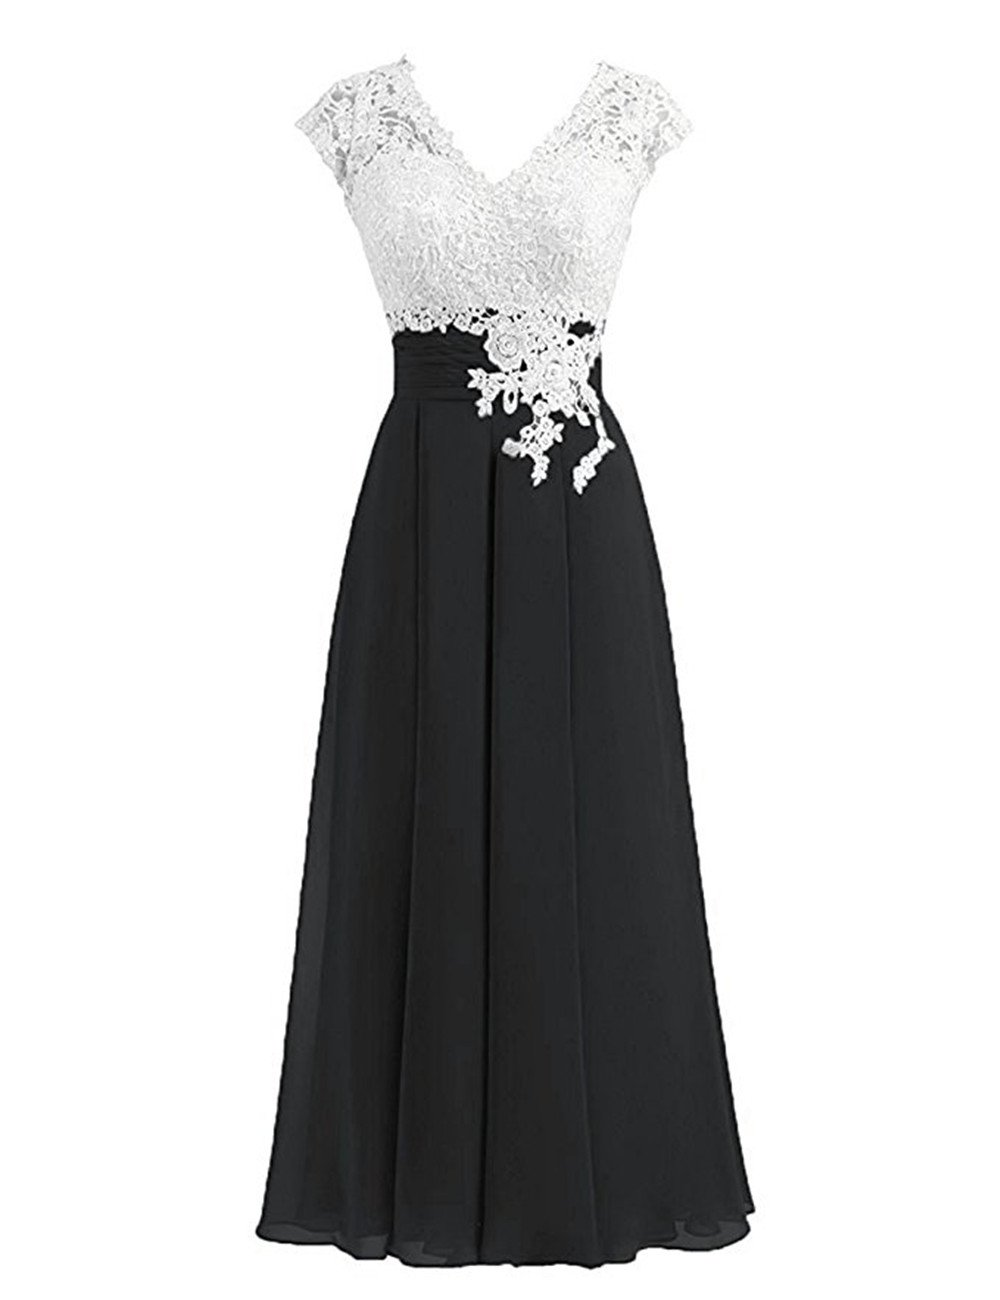 bec2ec83aea01e Women's Ivory Lace Top Chiffon Button V-Neck Bridesmaid Dresses with Cap  Sleeves Mother of The Bride Dresses (US16, Black)